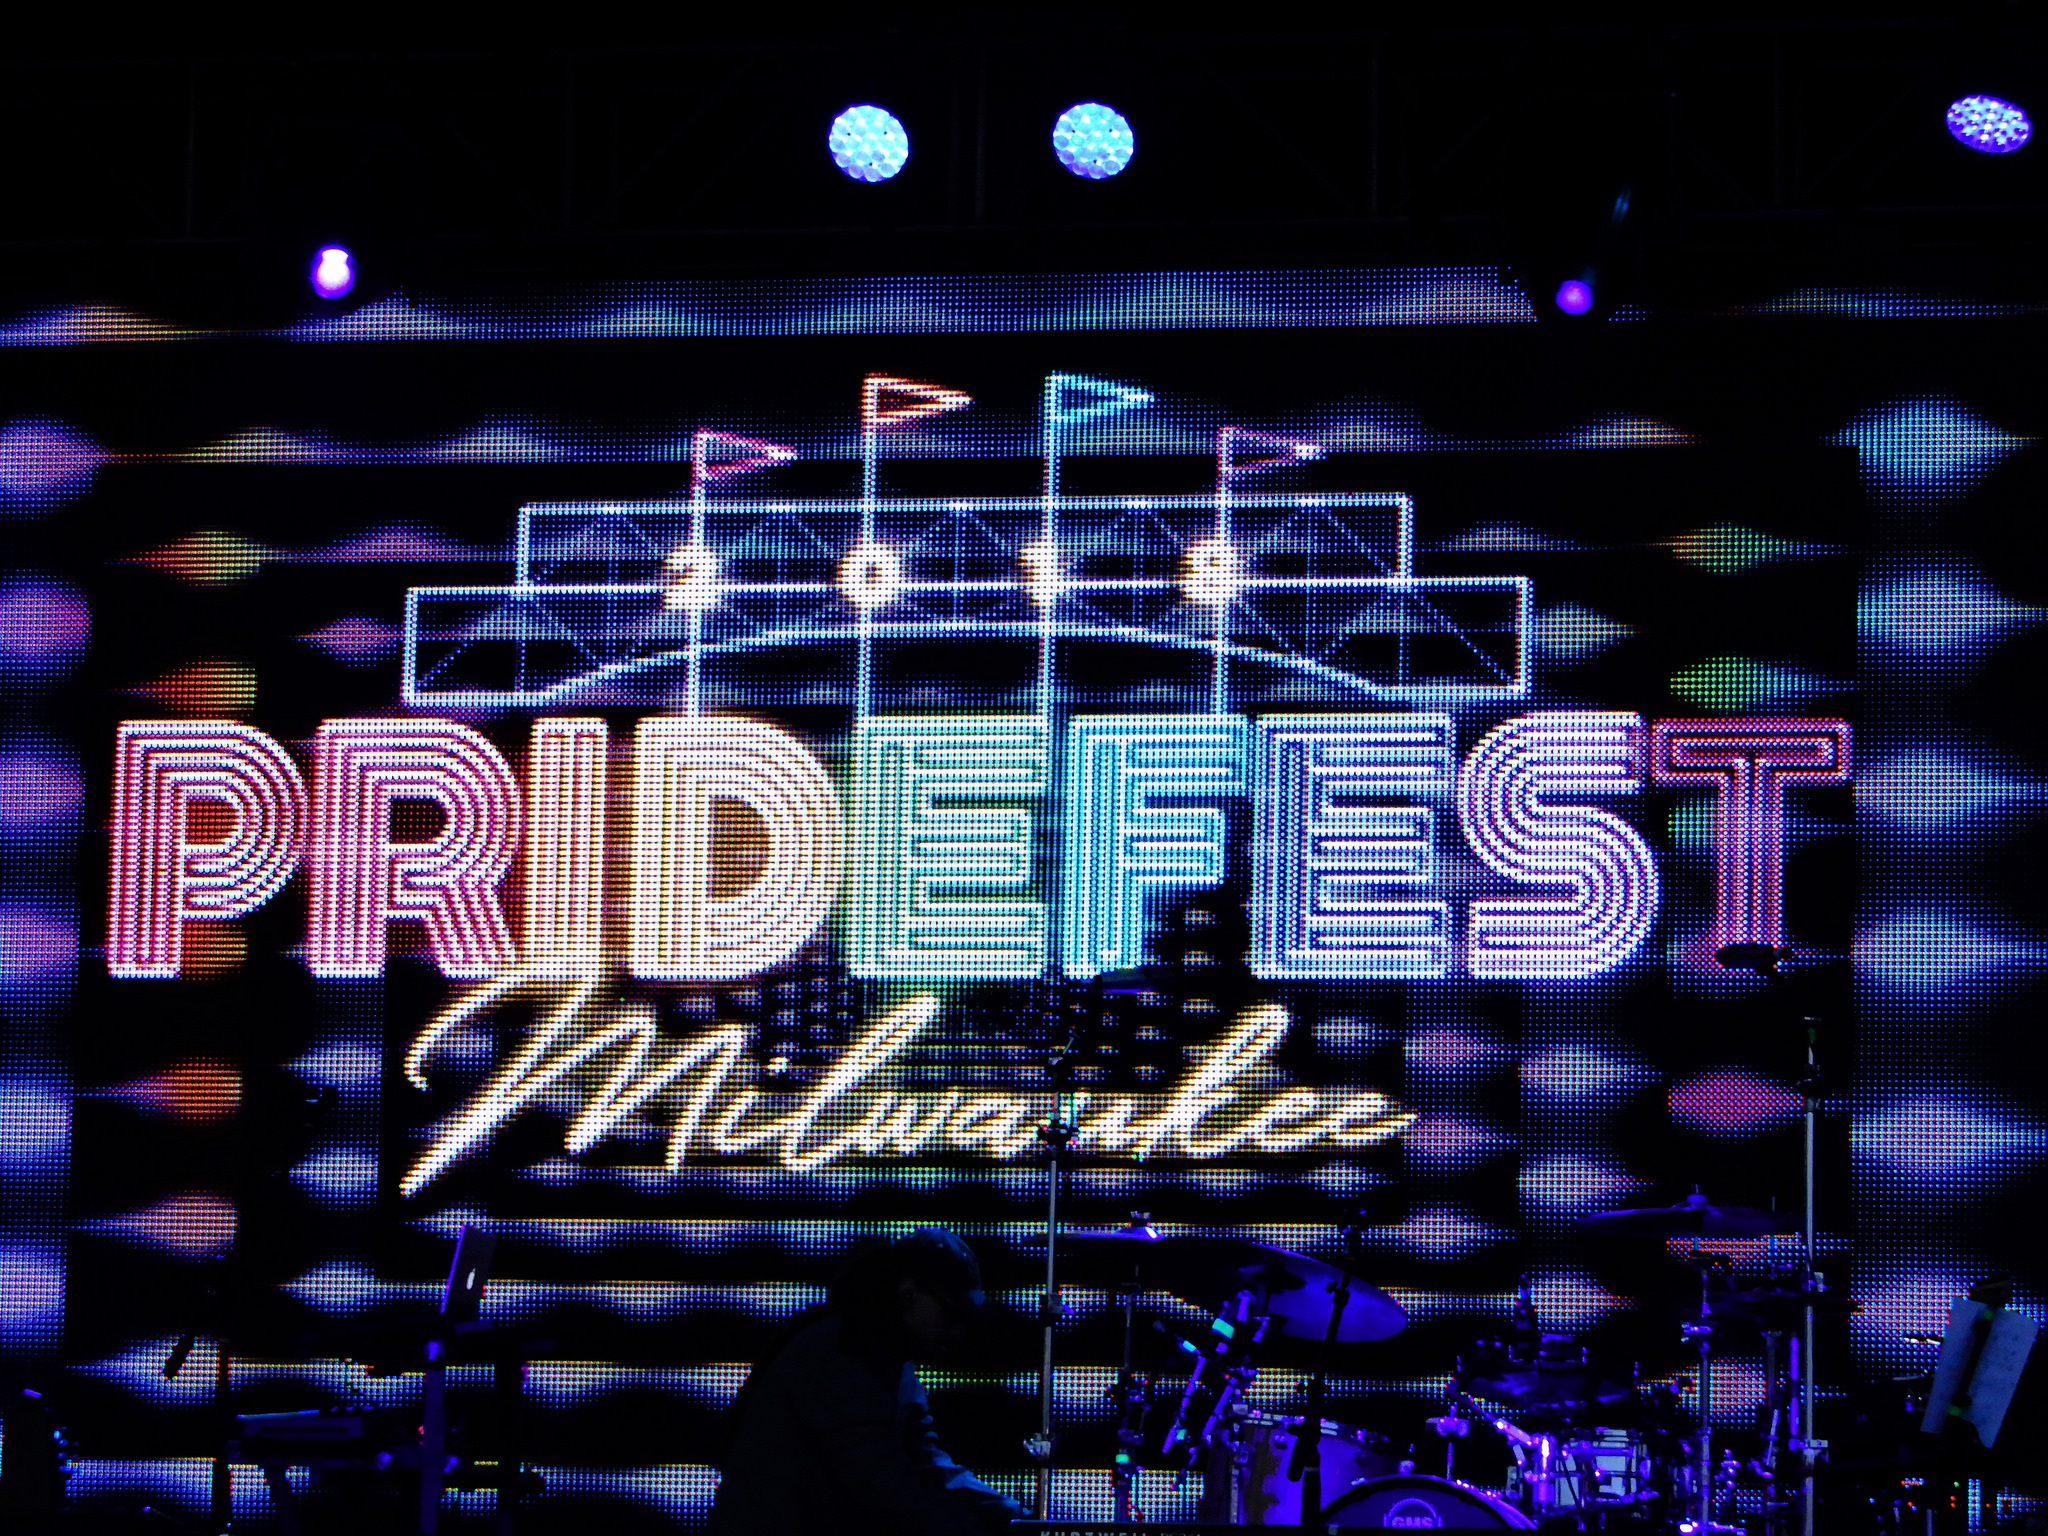 Since 1988, Milwaukee's annual PrideFest has become an ever-growing staple to the city's festival scene. This neon display is from the 2018 celebration.